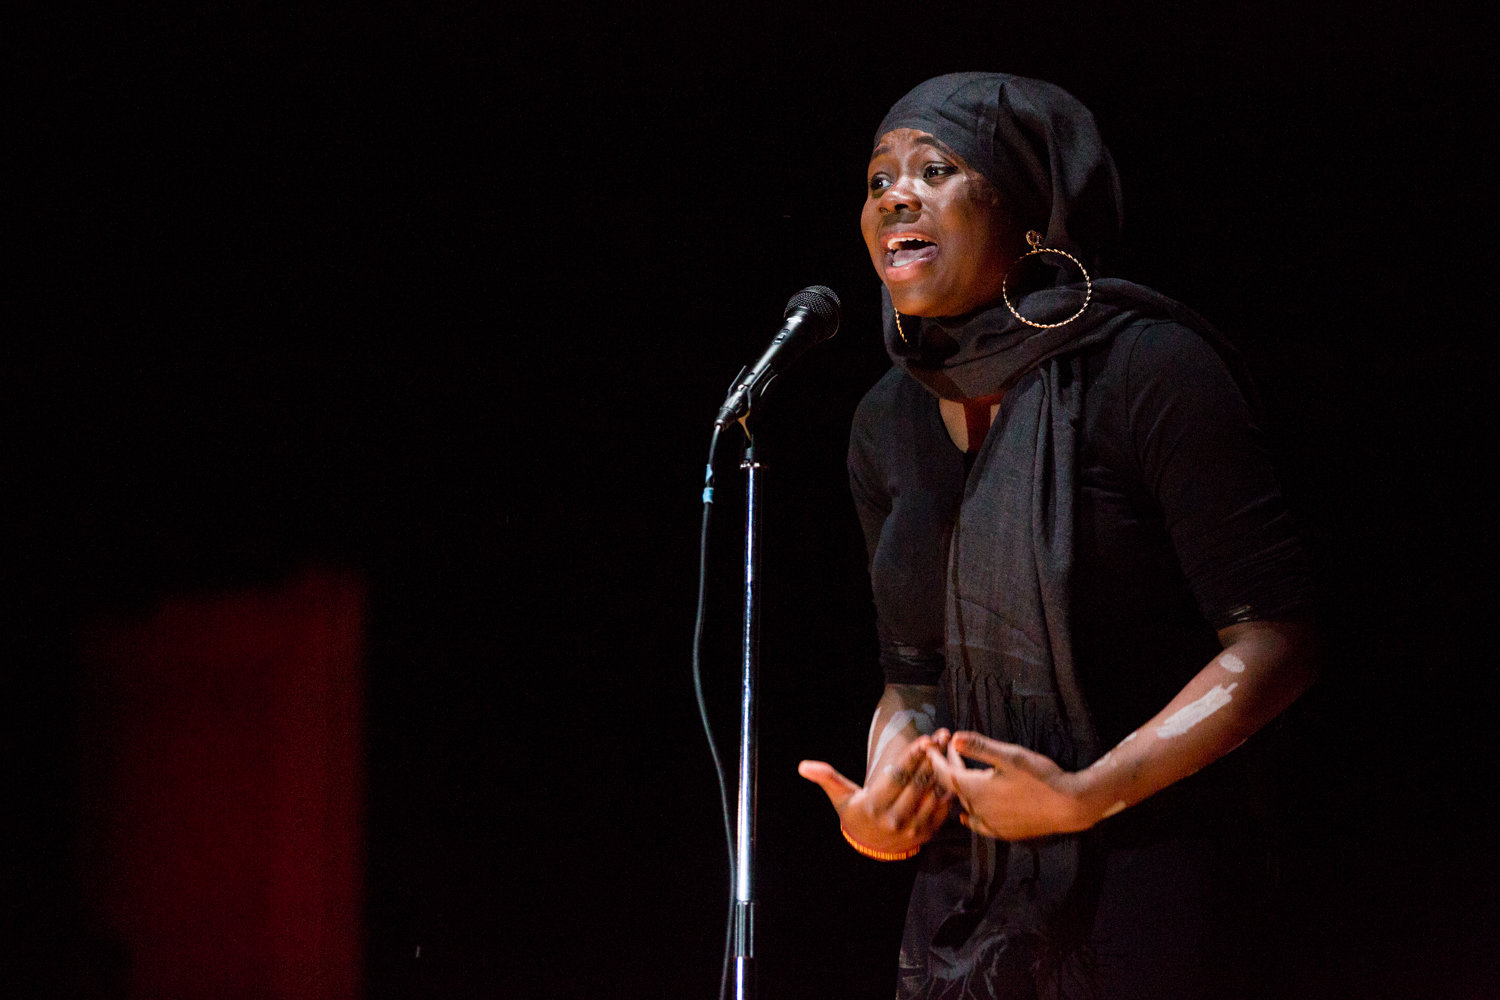 Marble Hill School for International Studies senior Hawa Camara performs an original spoken word poem, 'Racism,' for the school's second annual Black History Show.